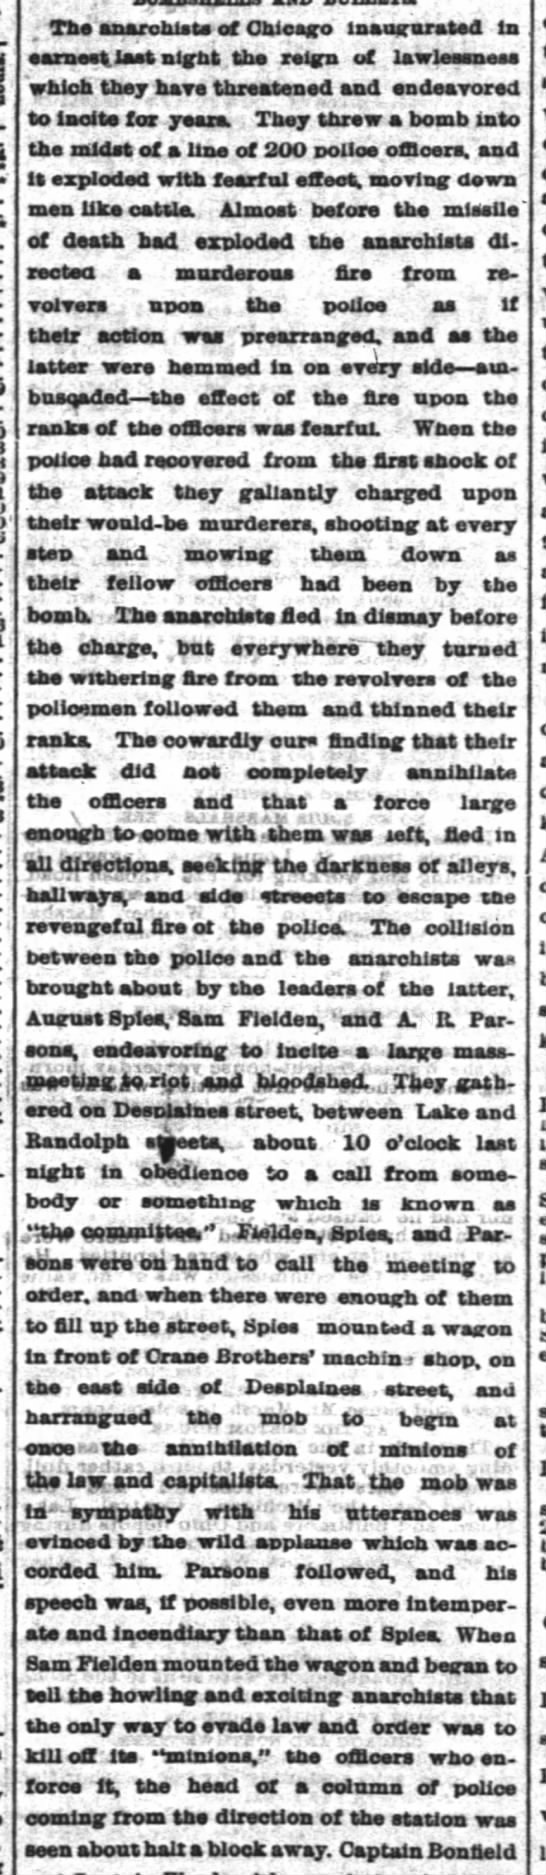 Dramatic pro-police, anti-anarchist account of the Haymarket Riot -